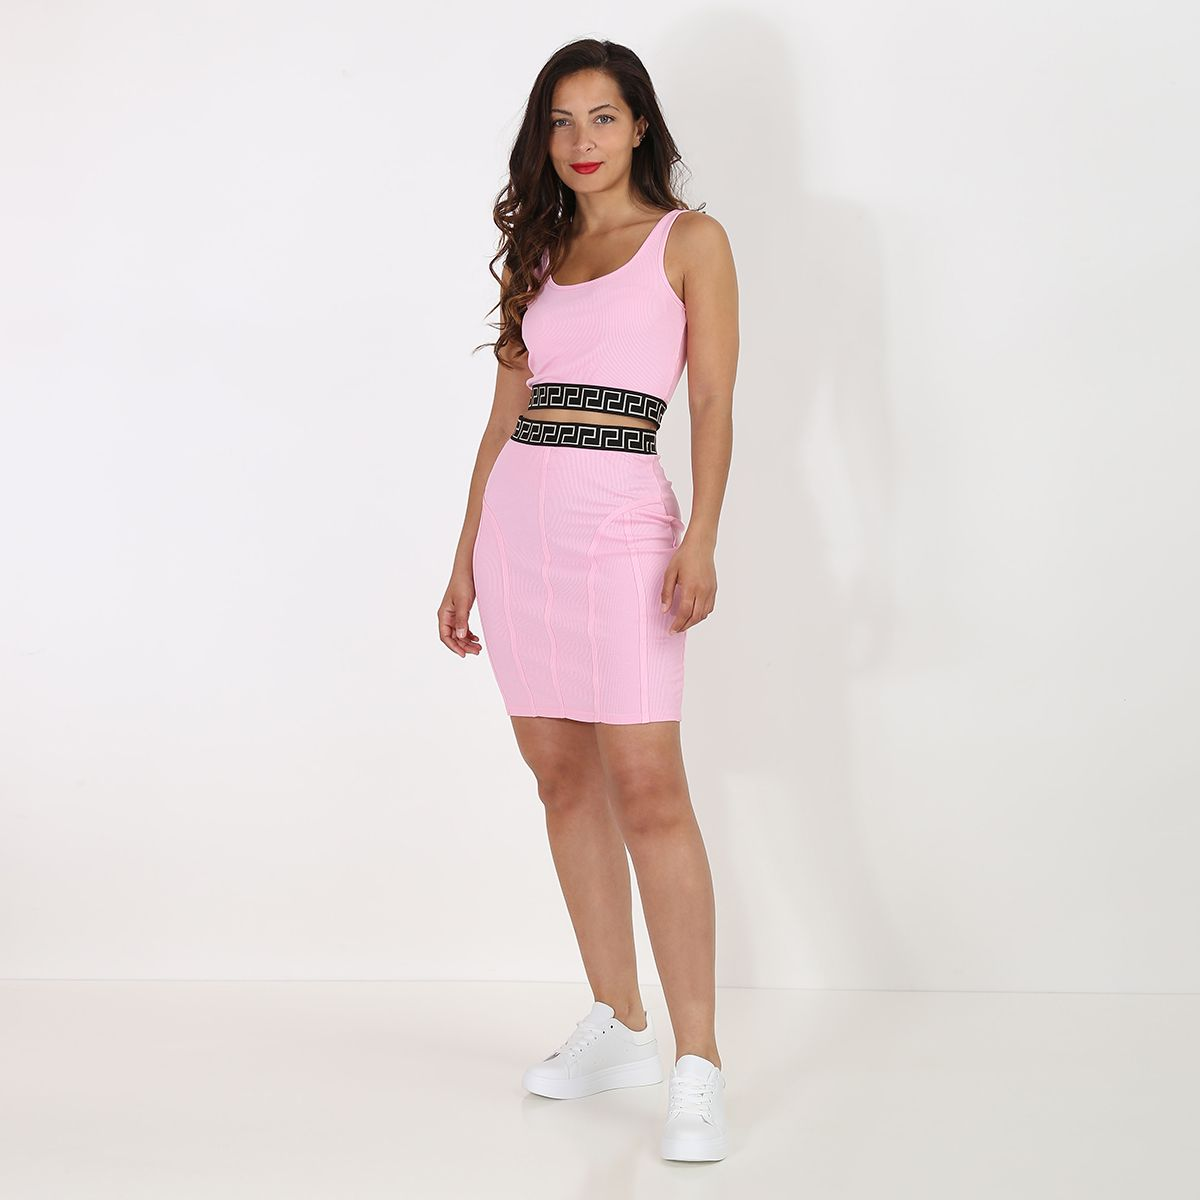 Ensemble côtelé jupe crop top rose à motifs grecques